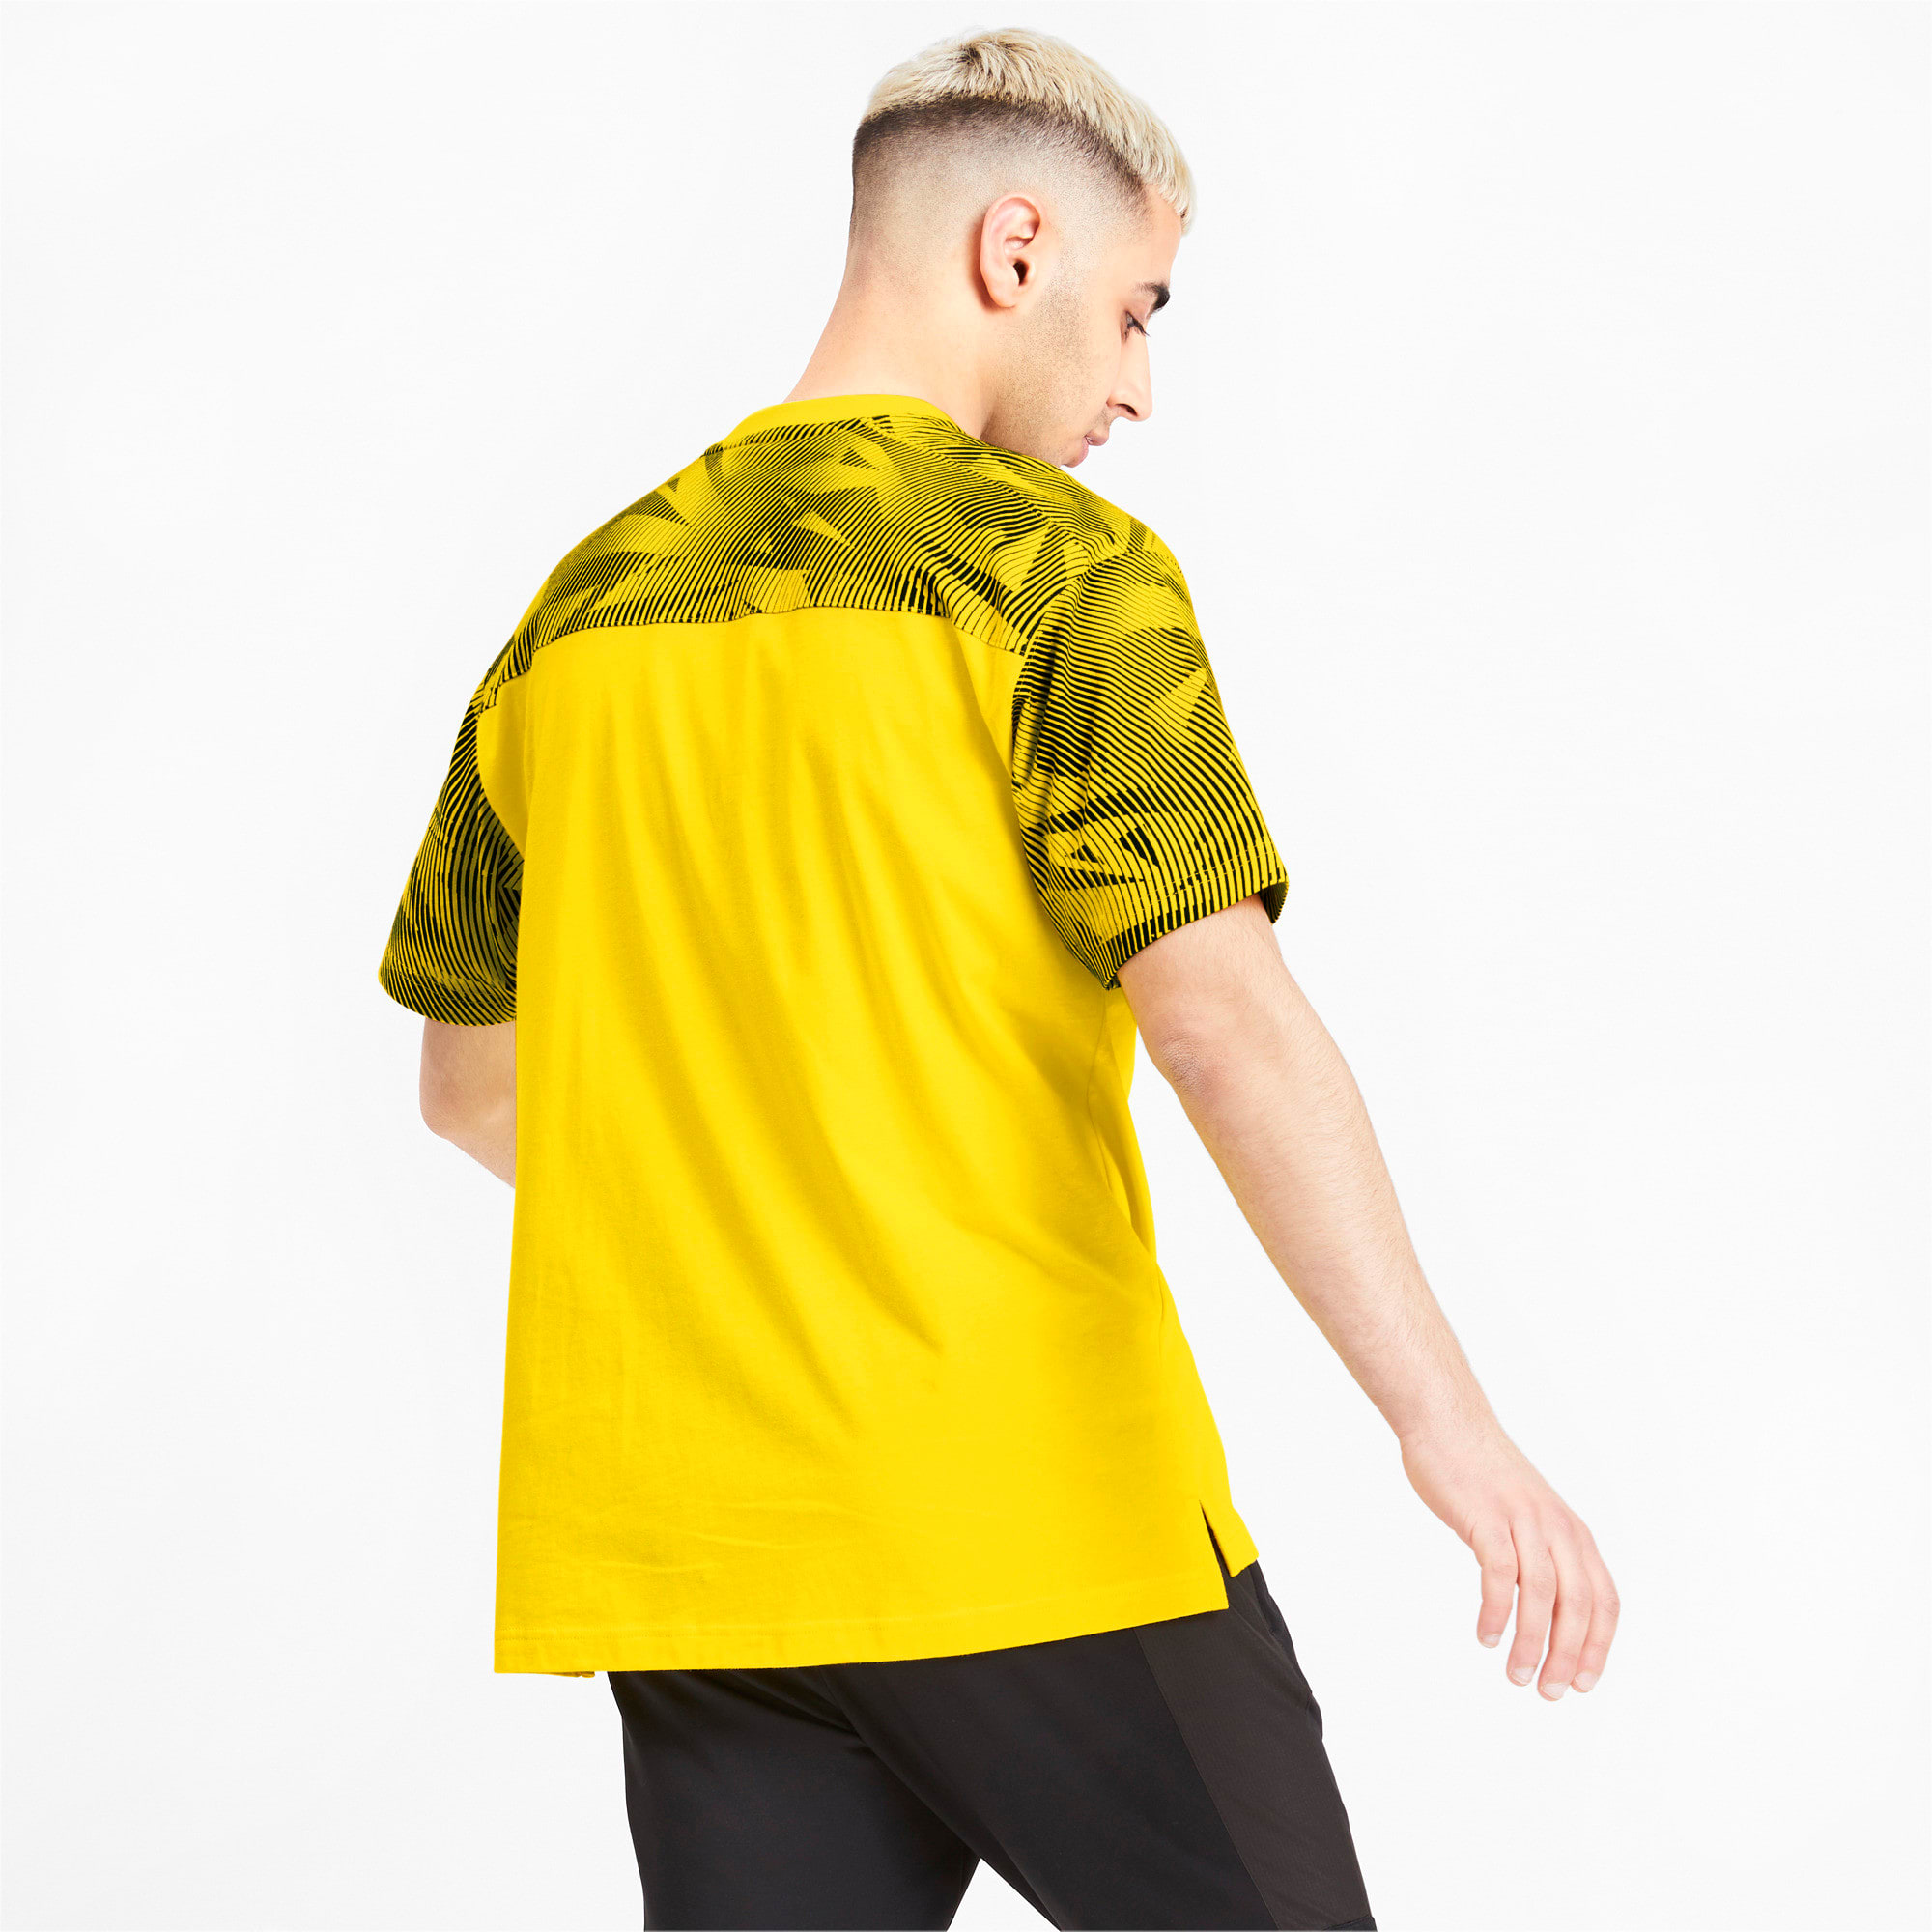 Thumbnail 2 of BVB Casuals Men's Tee, Cyber Yellow-Puma Black, medium